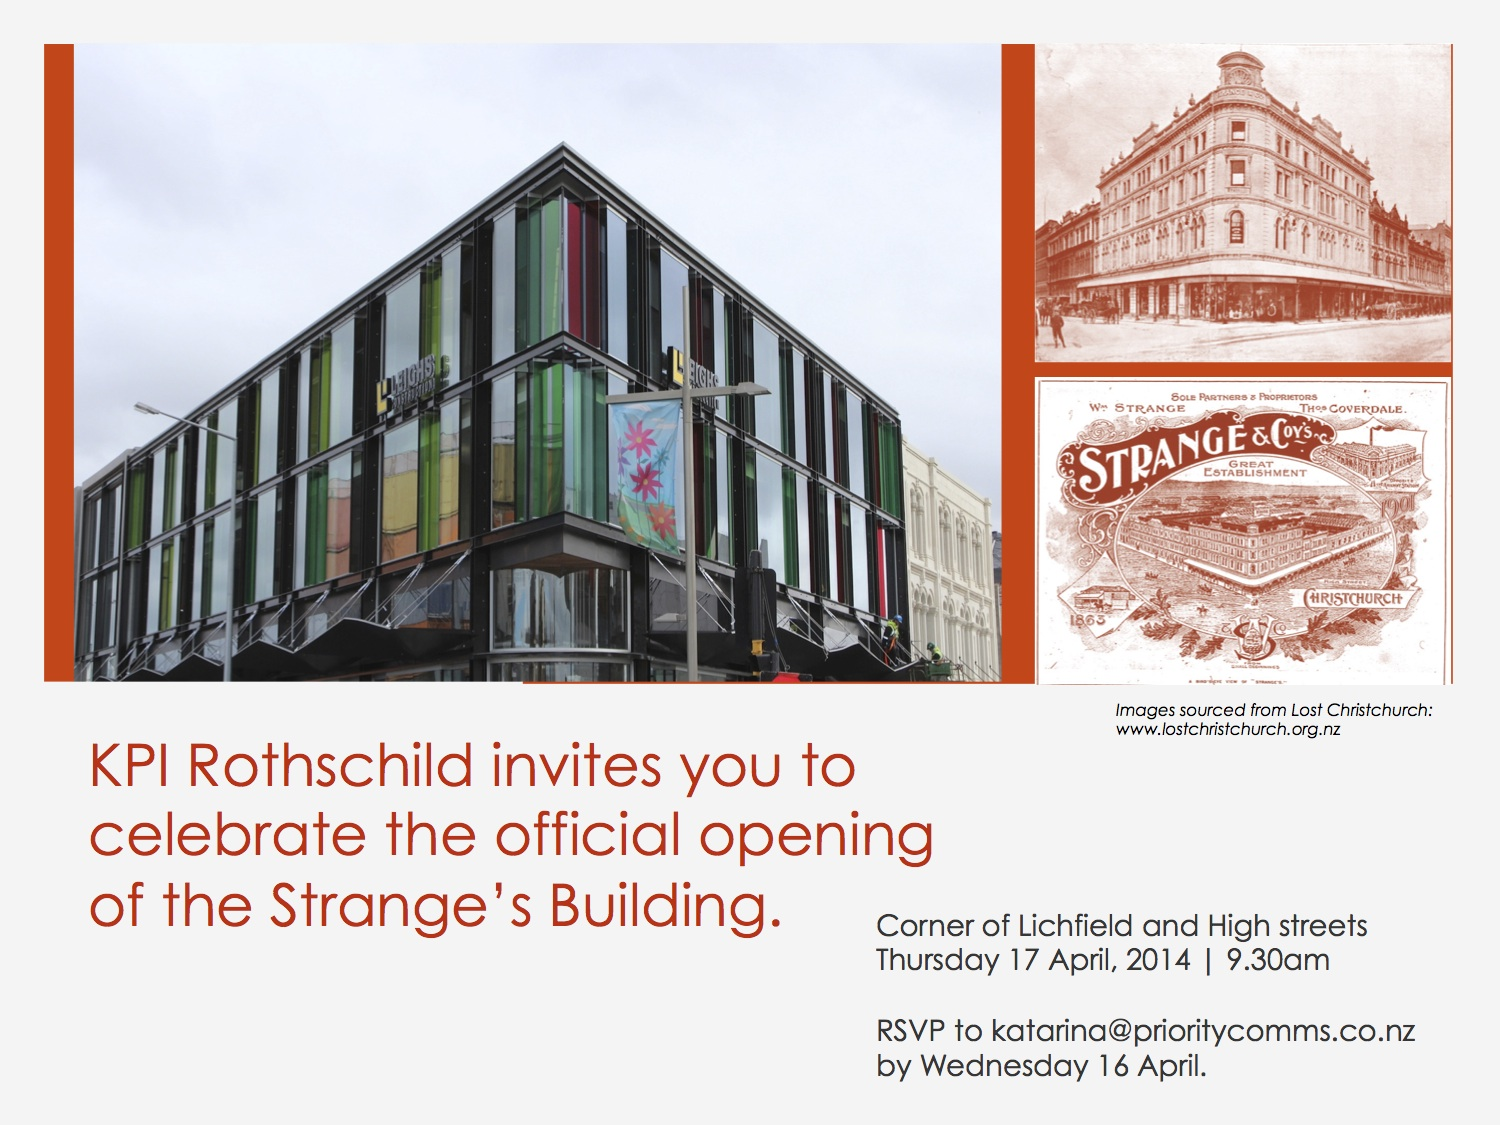 An invite we created for the official opening of the Strange's Building.